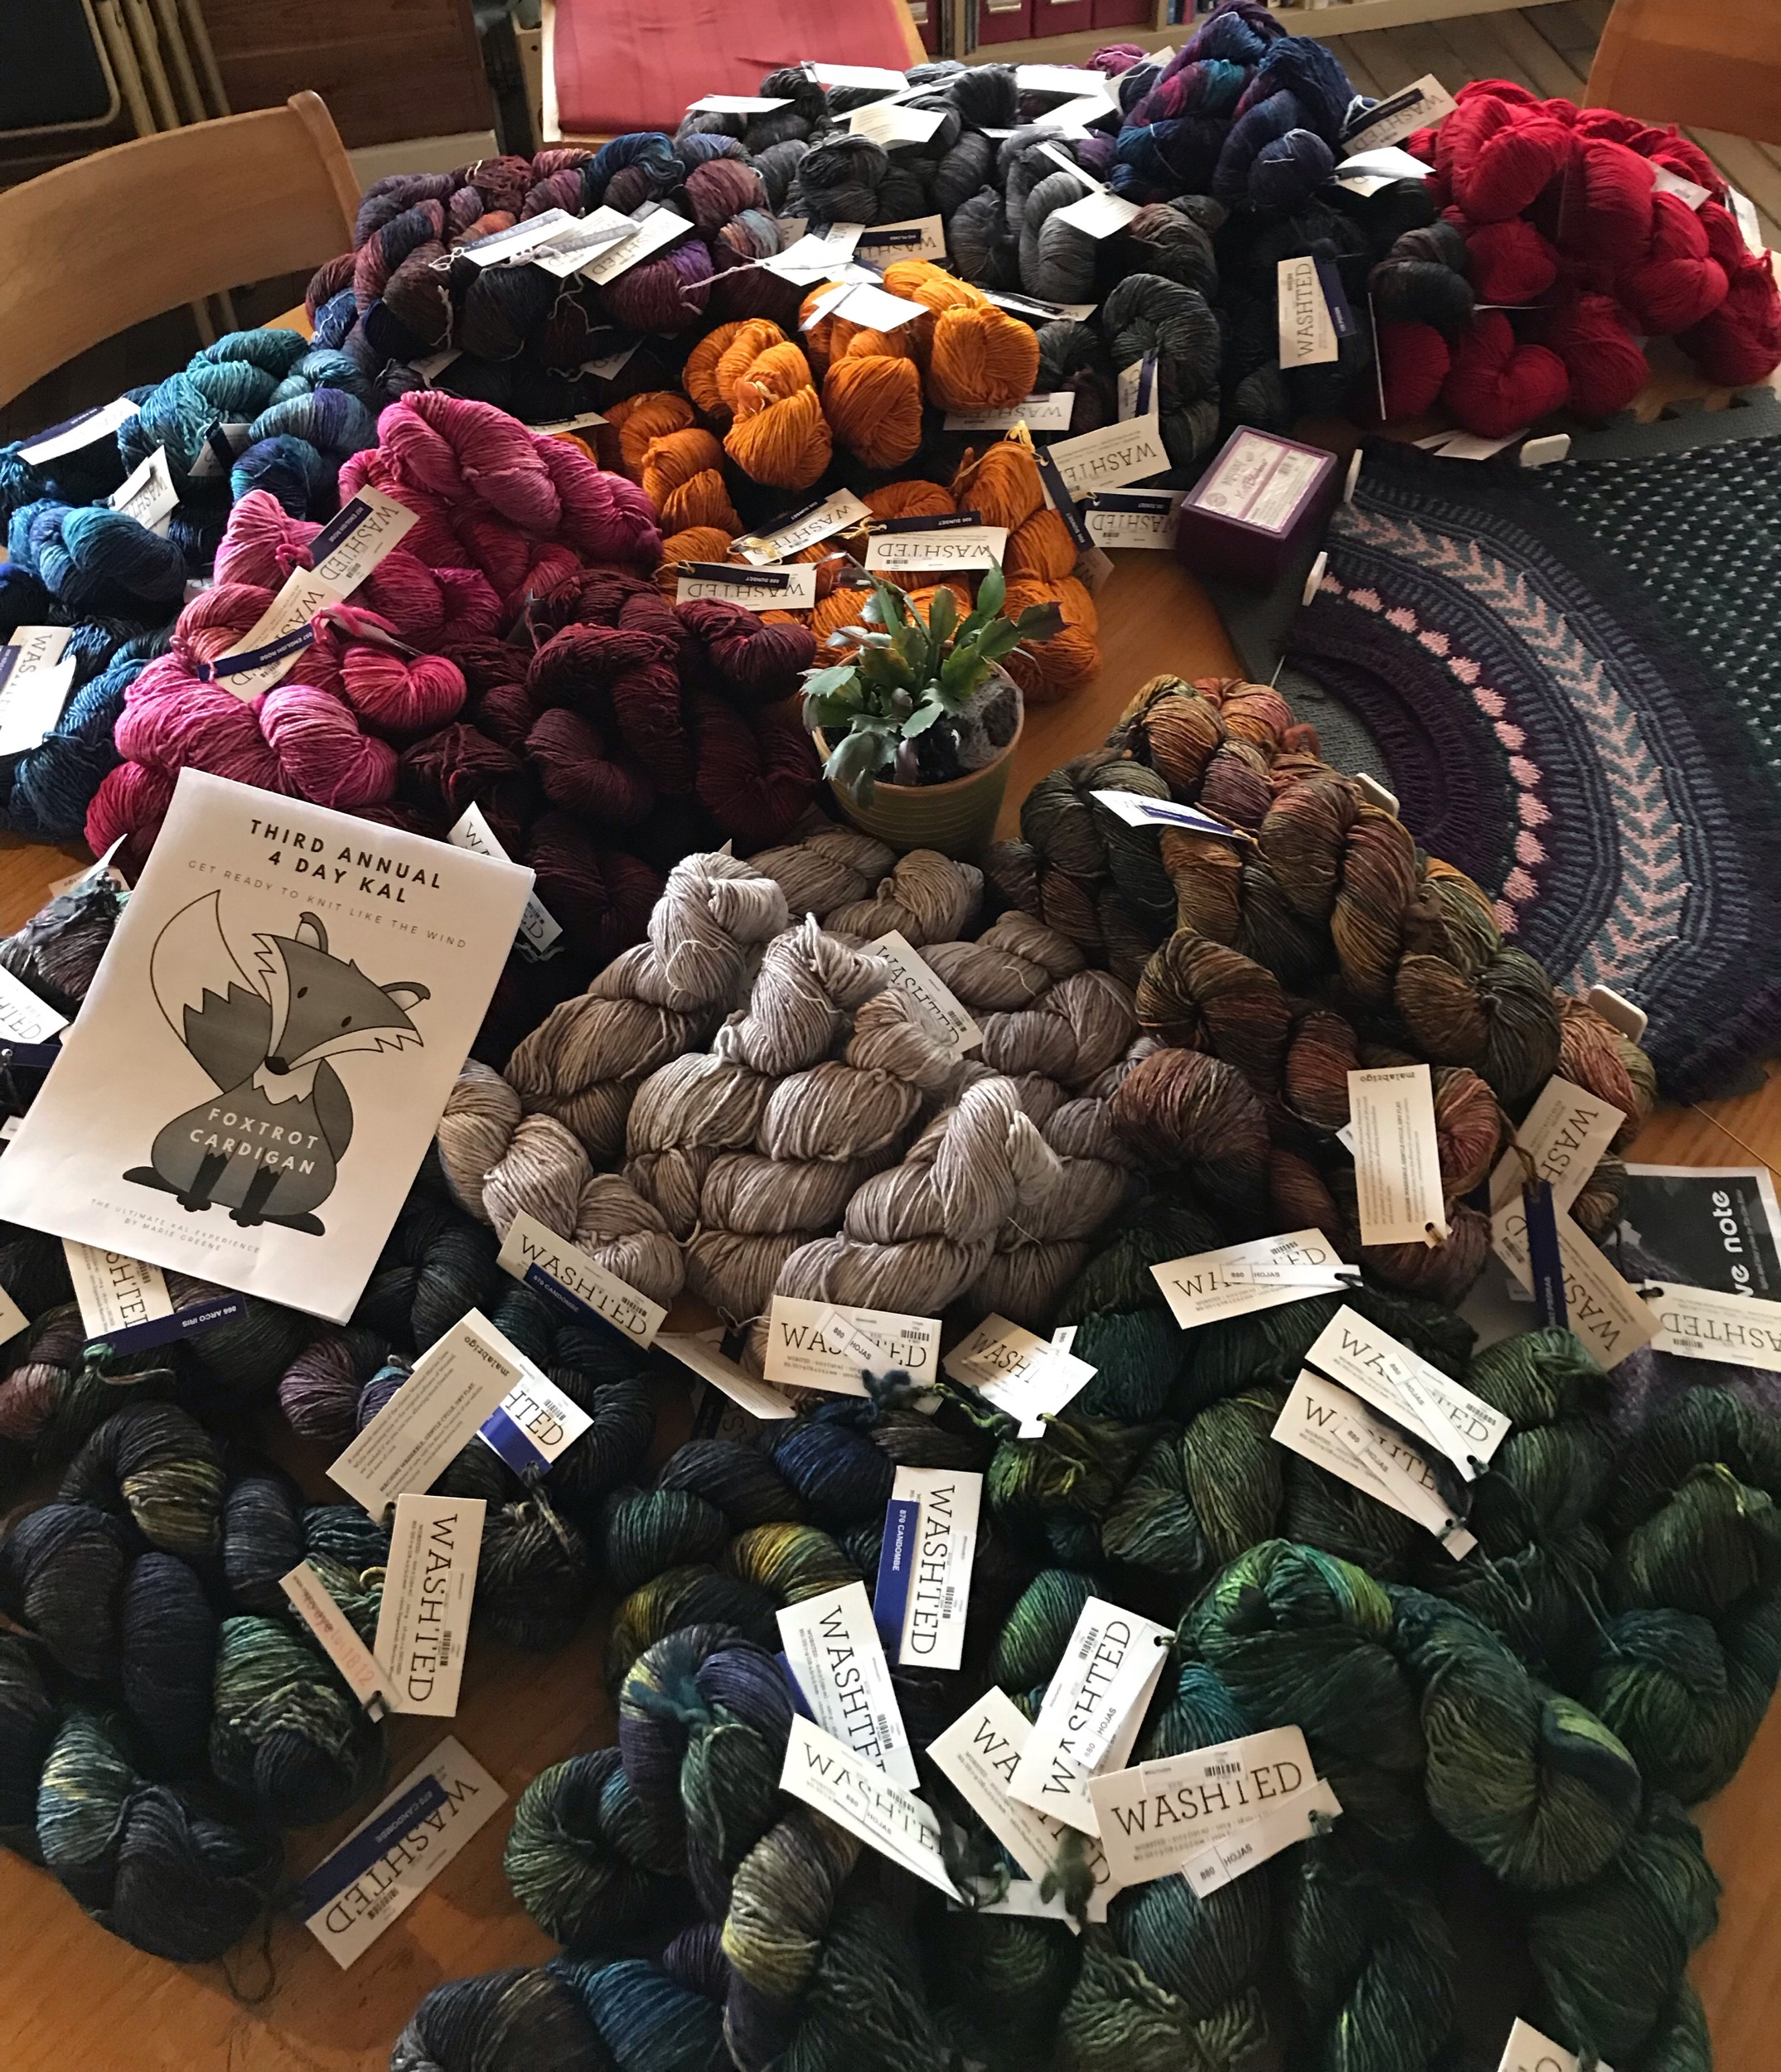 Approximately 17 miles of Malabrigo